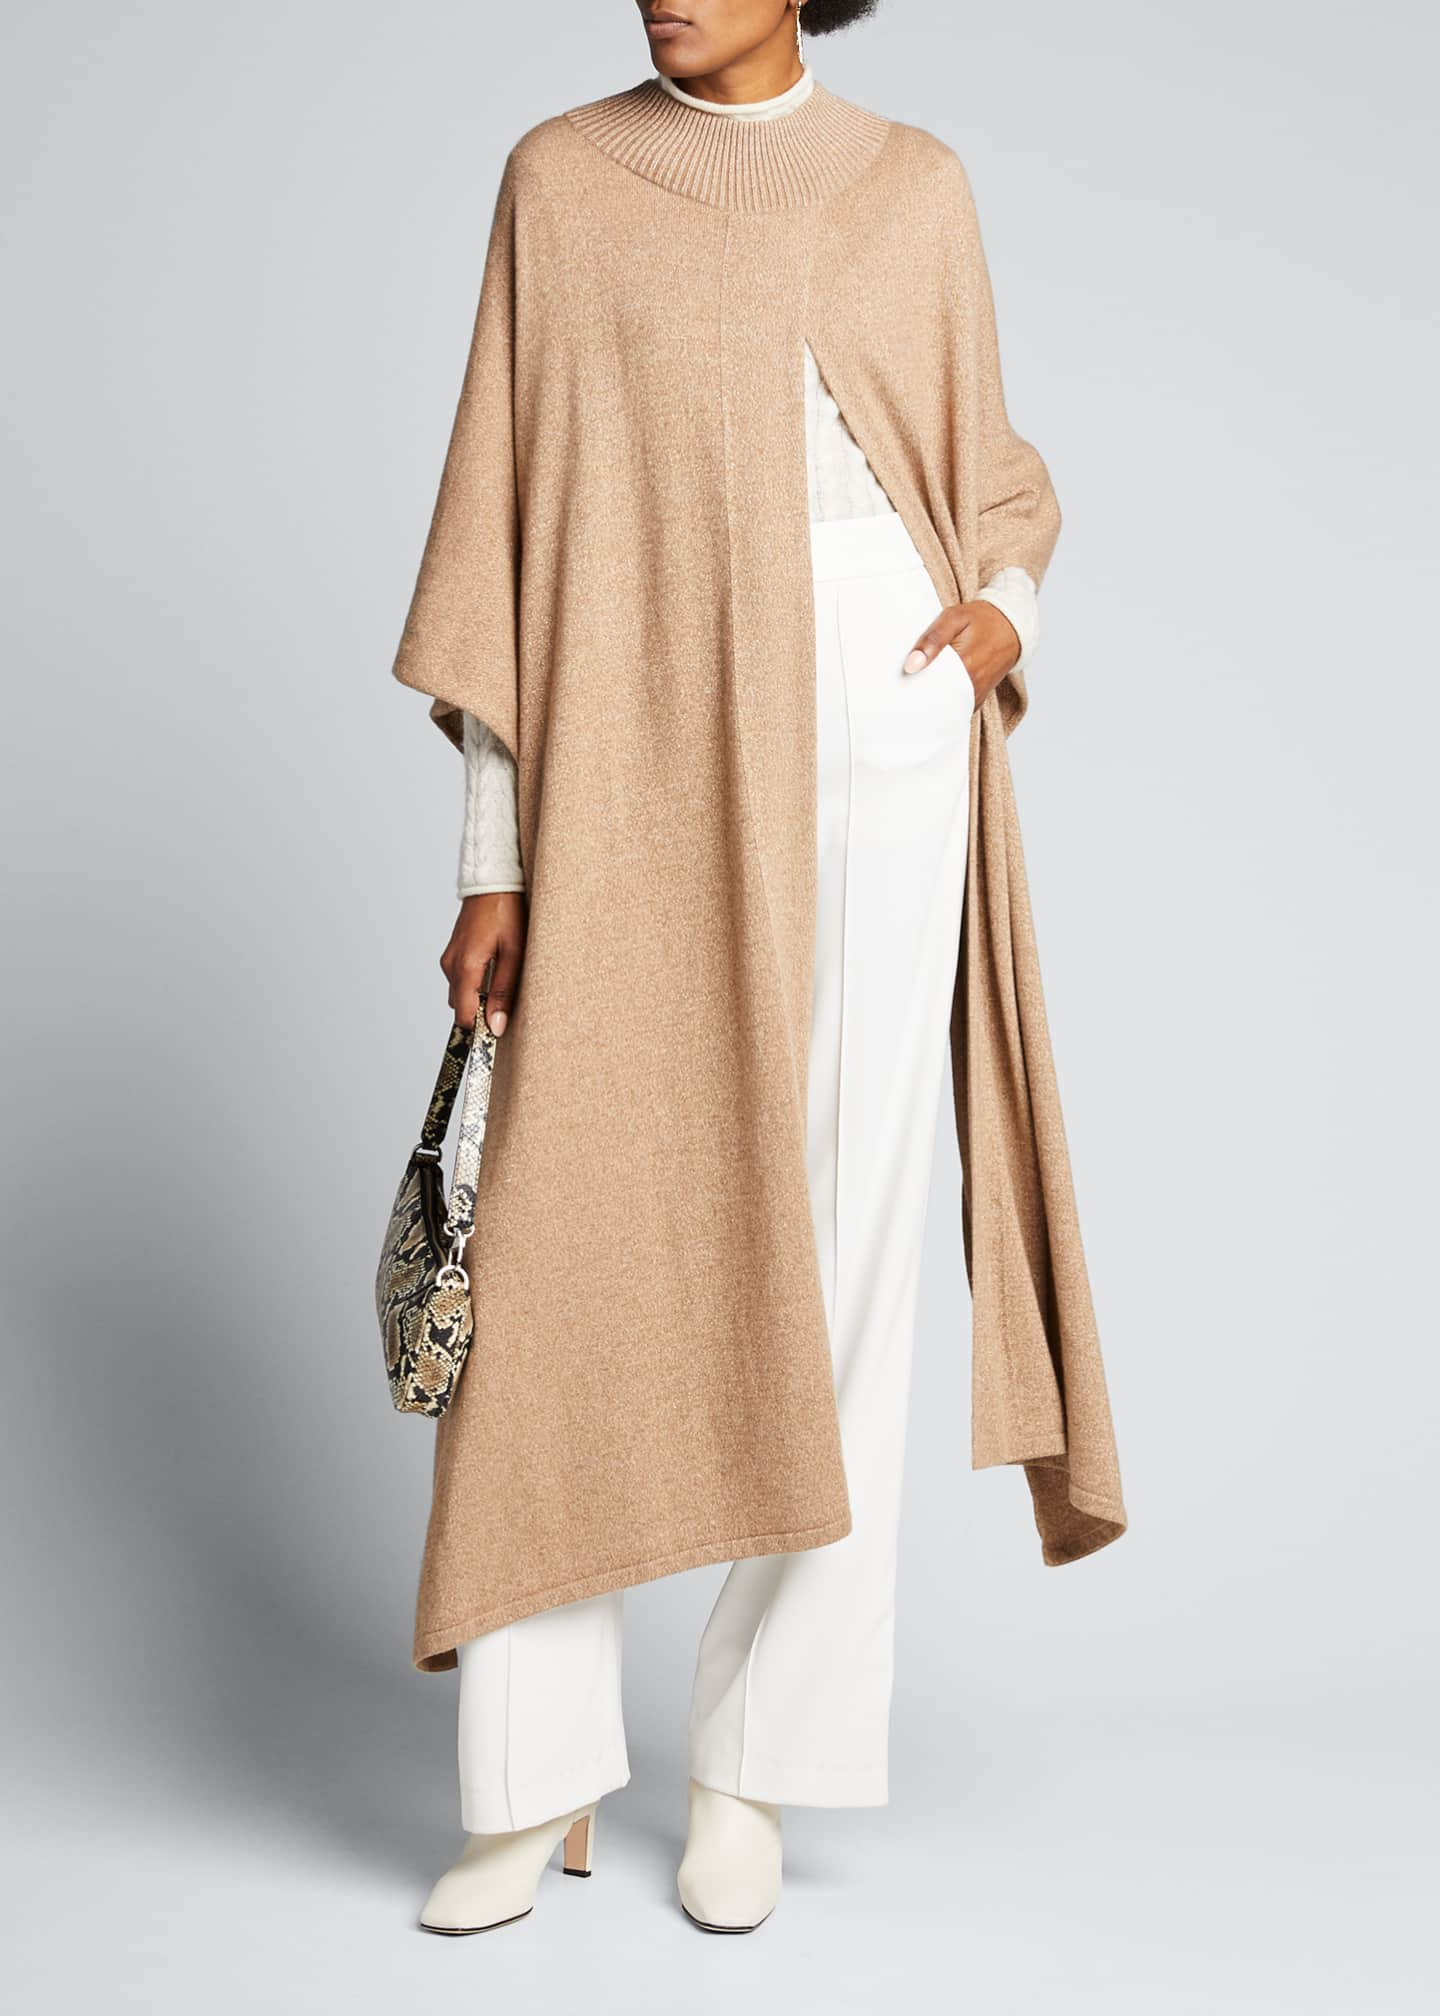 Lafayette 148 New York Knit Cape with Lurex